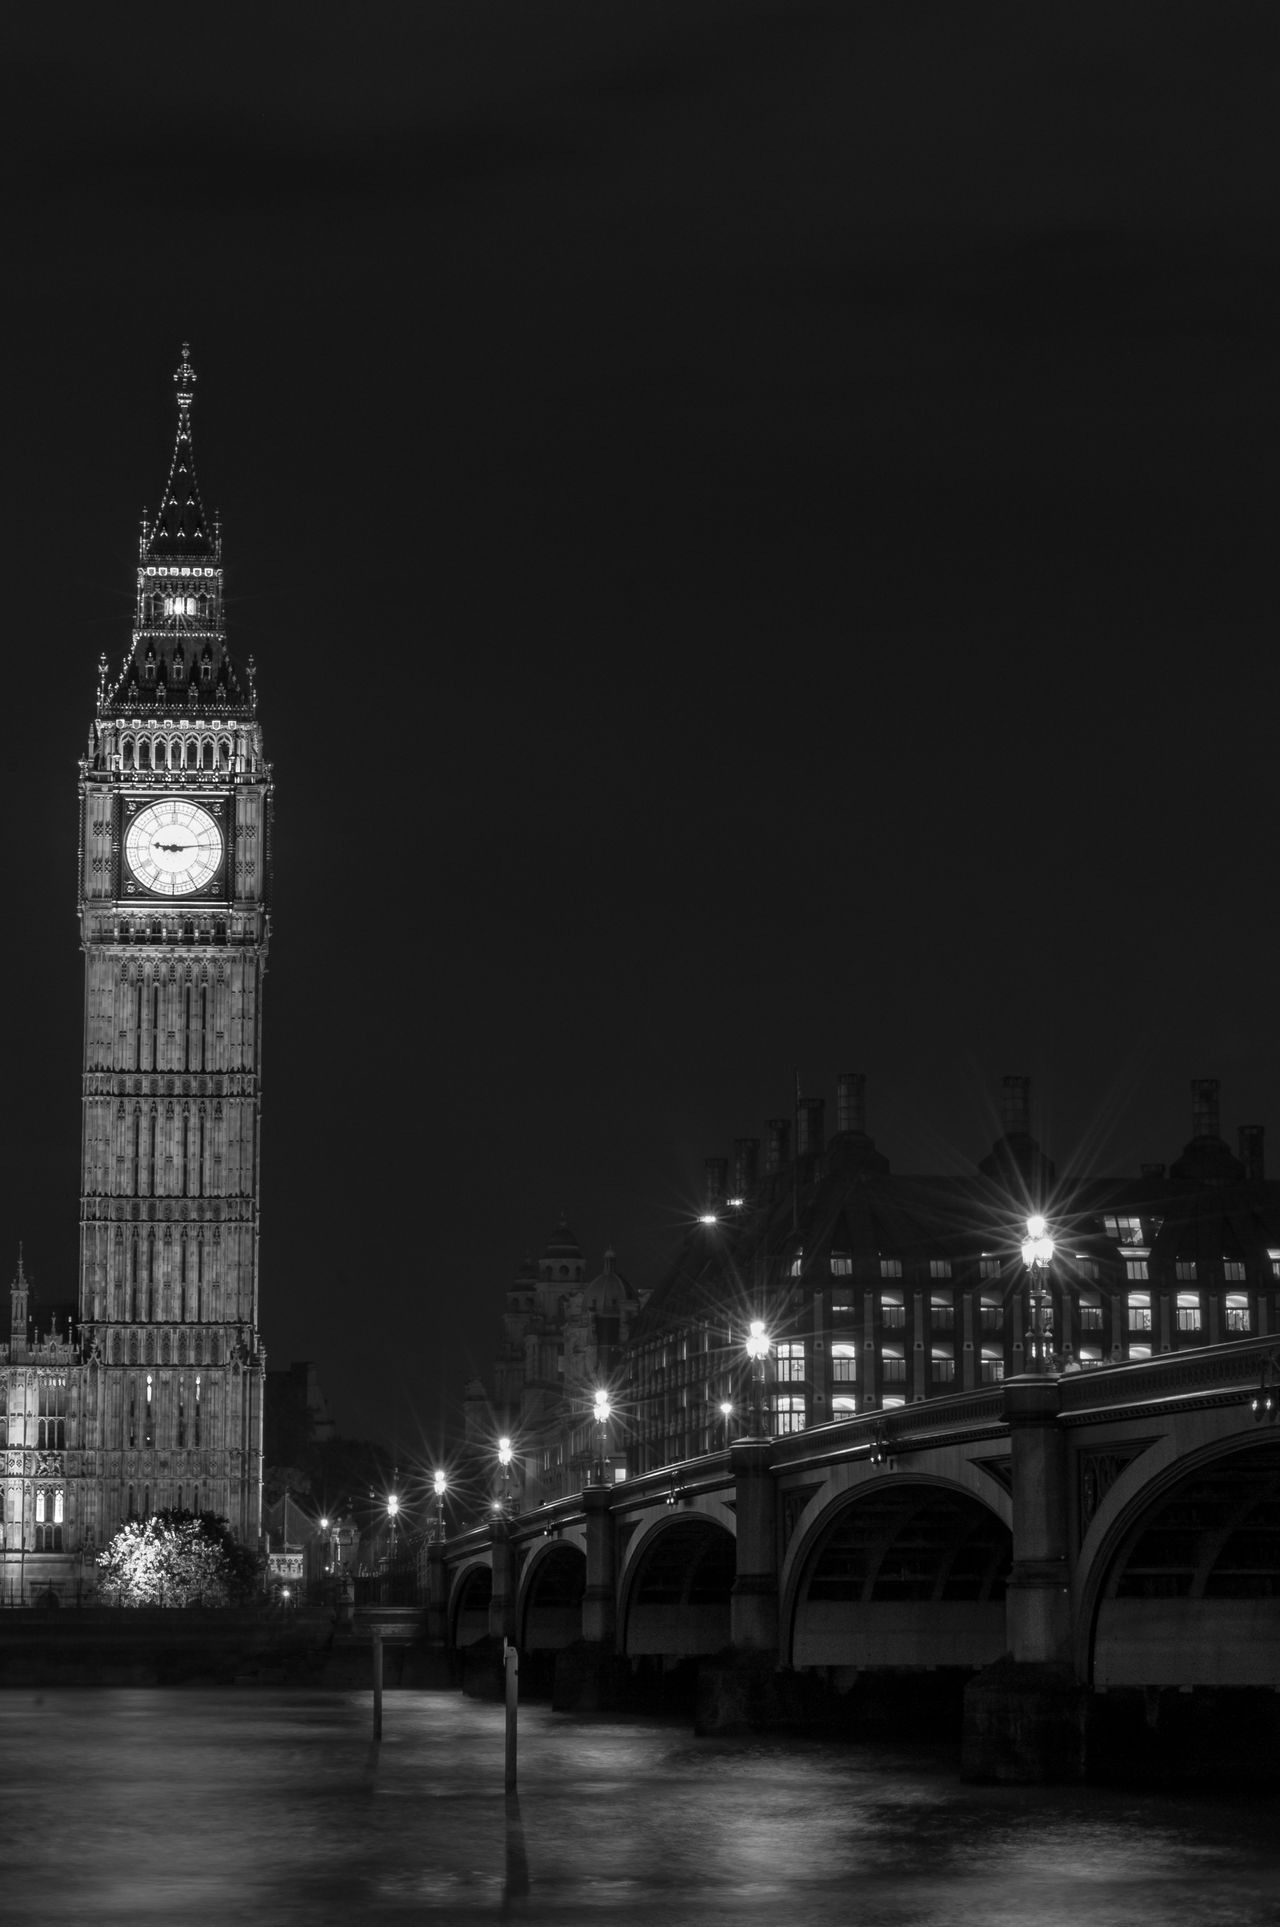 Architecture Big Ben Bridge - Man Made Structure City Cityscape Clock Clock Face Clock Tower Cultures Government Midnight Night No People Outdoors Politics And Government Time Tourism Tower Travel Destinations Westminster Westminster Bridge